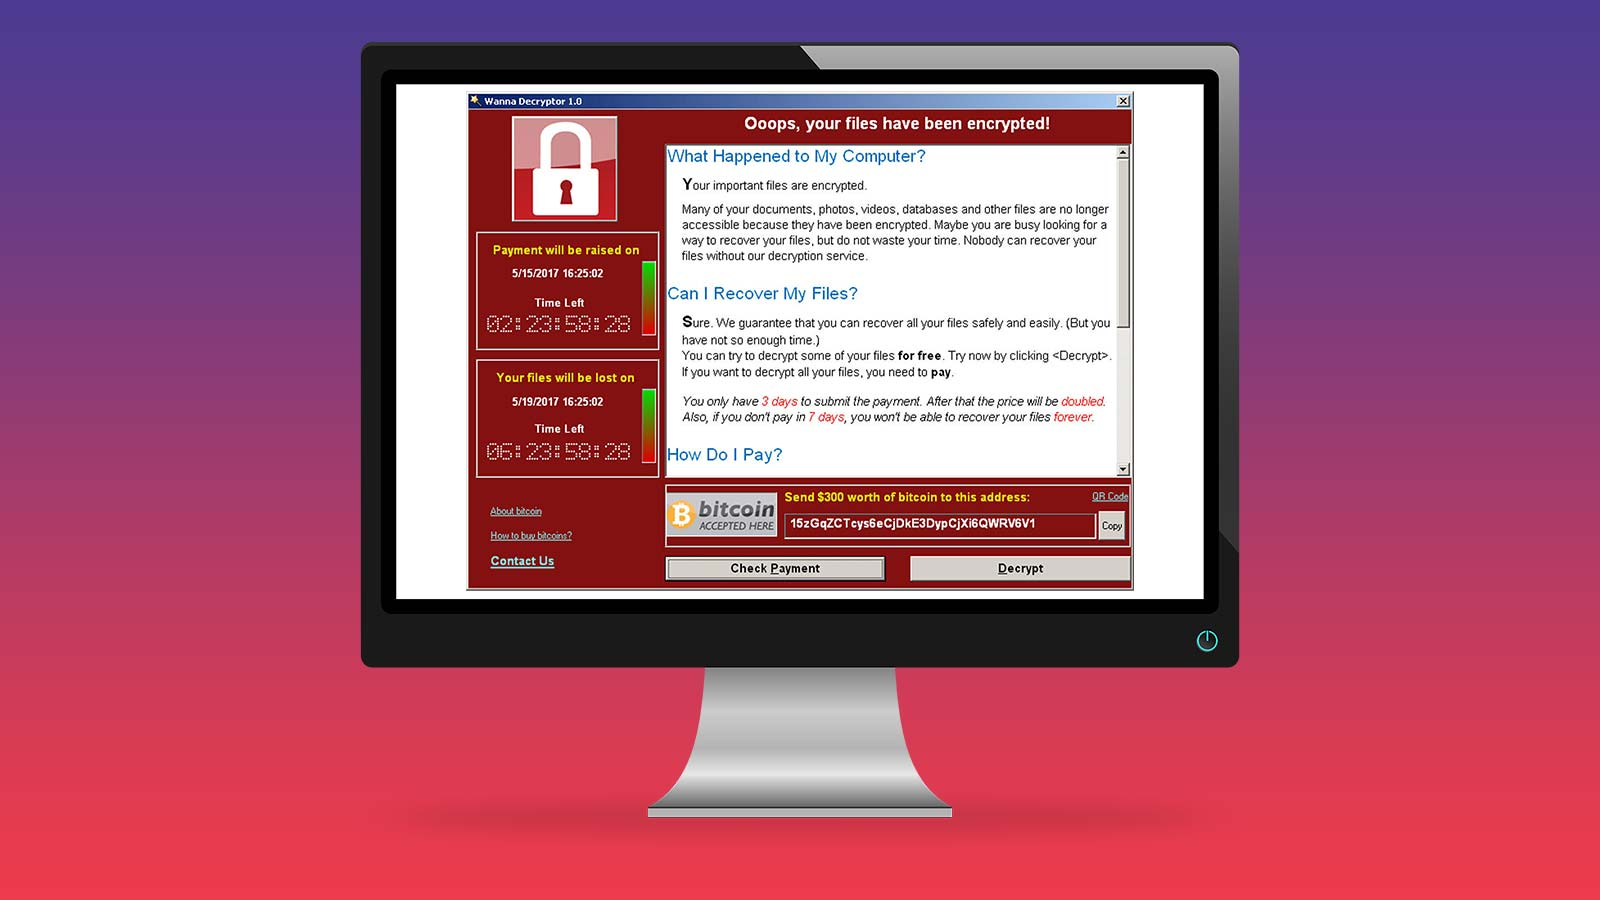 Ransomware: Understanding the threat and blocking lateral movement